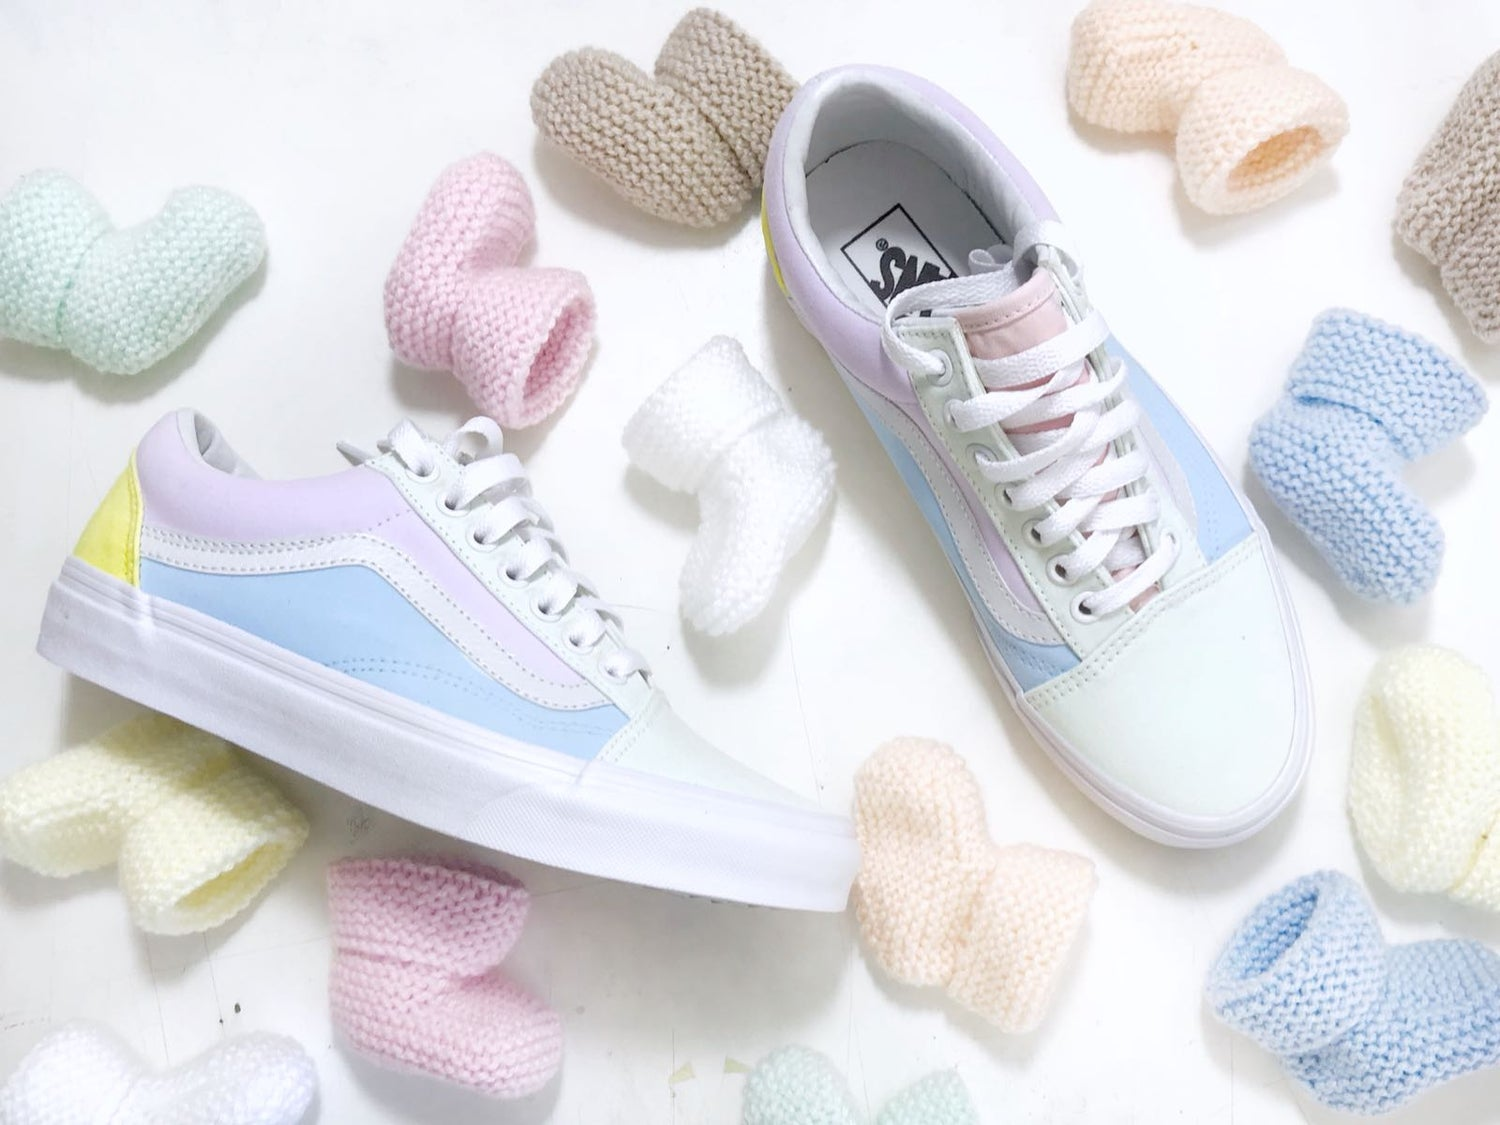 Image of The Vans x Pastel Pack